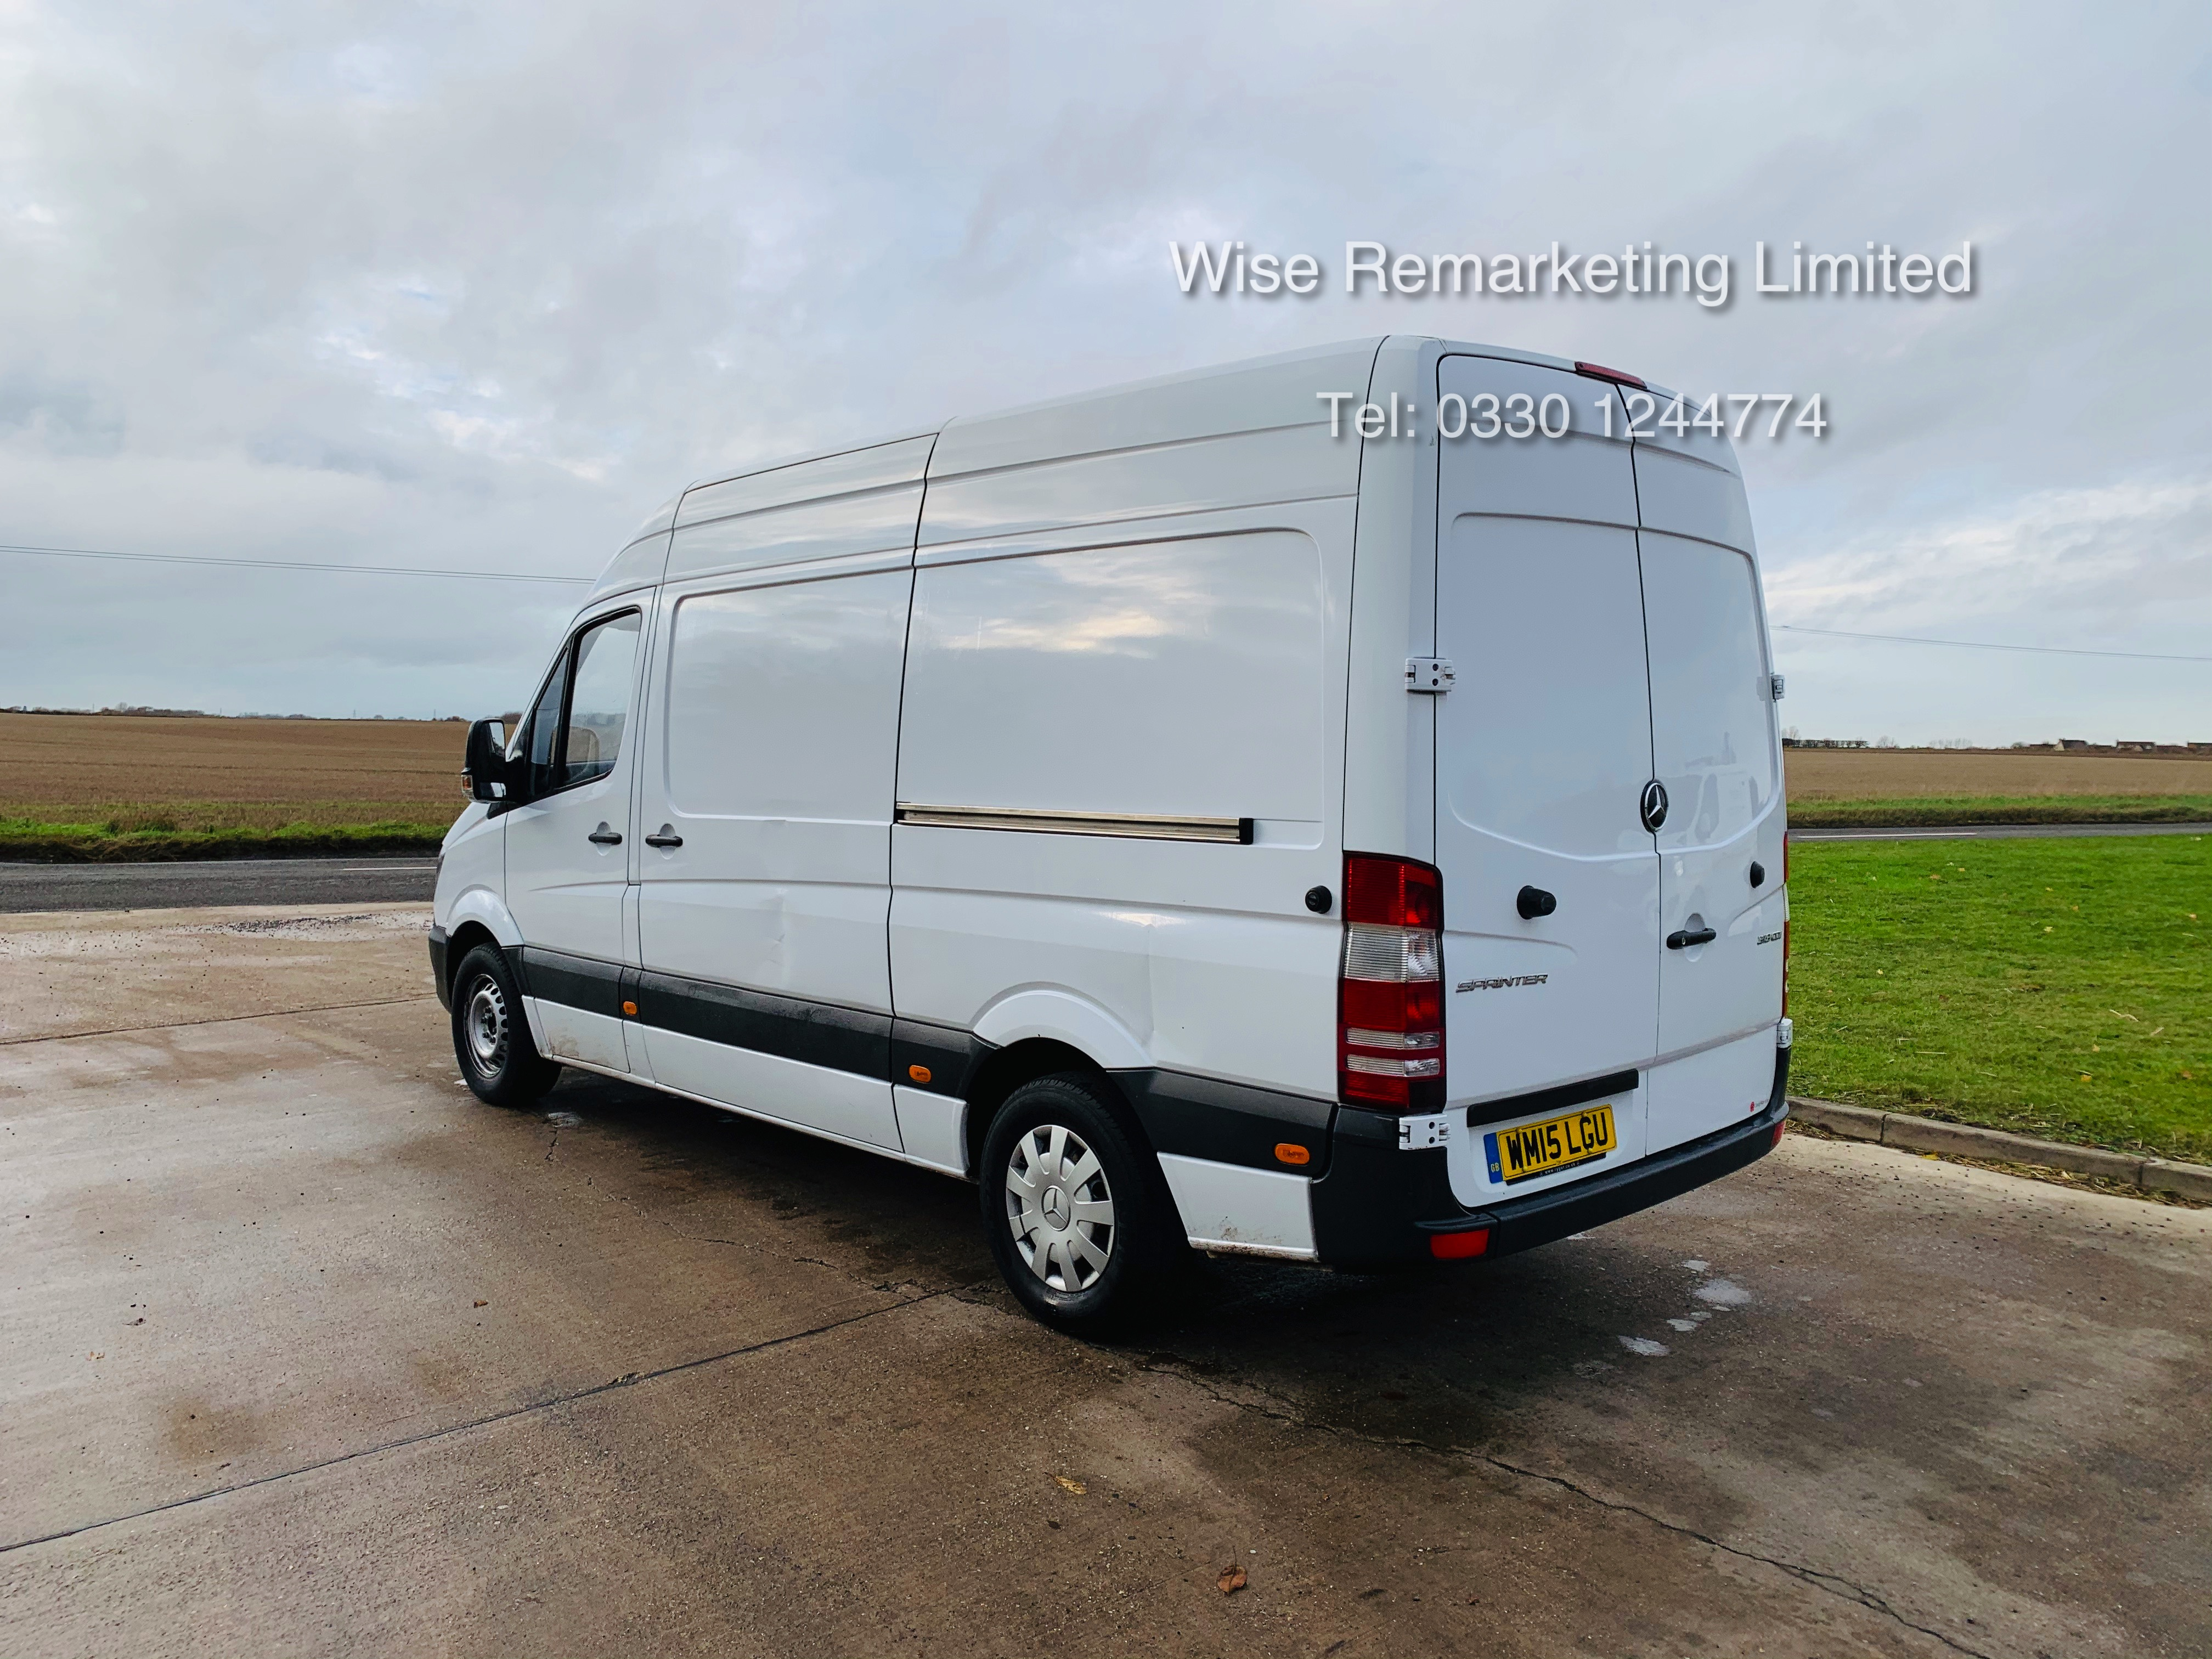 *Reserve Met* Mercedes Sprinter 313 CDI 2.1TD - 2015 15 Reg - Company Maintained - Low Miles - Image 5 of 16